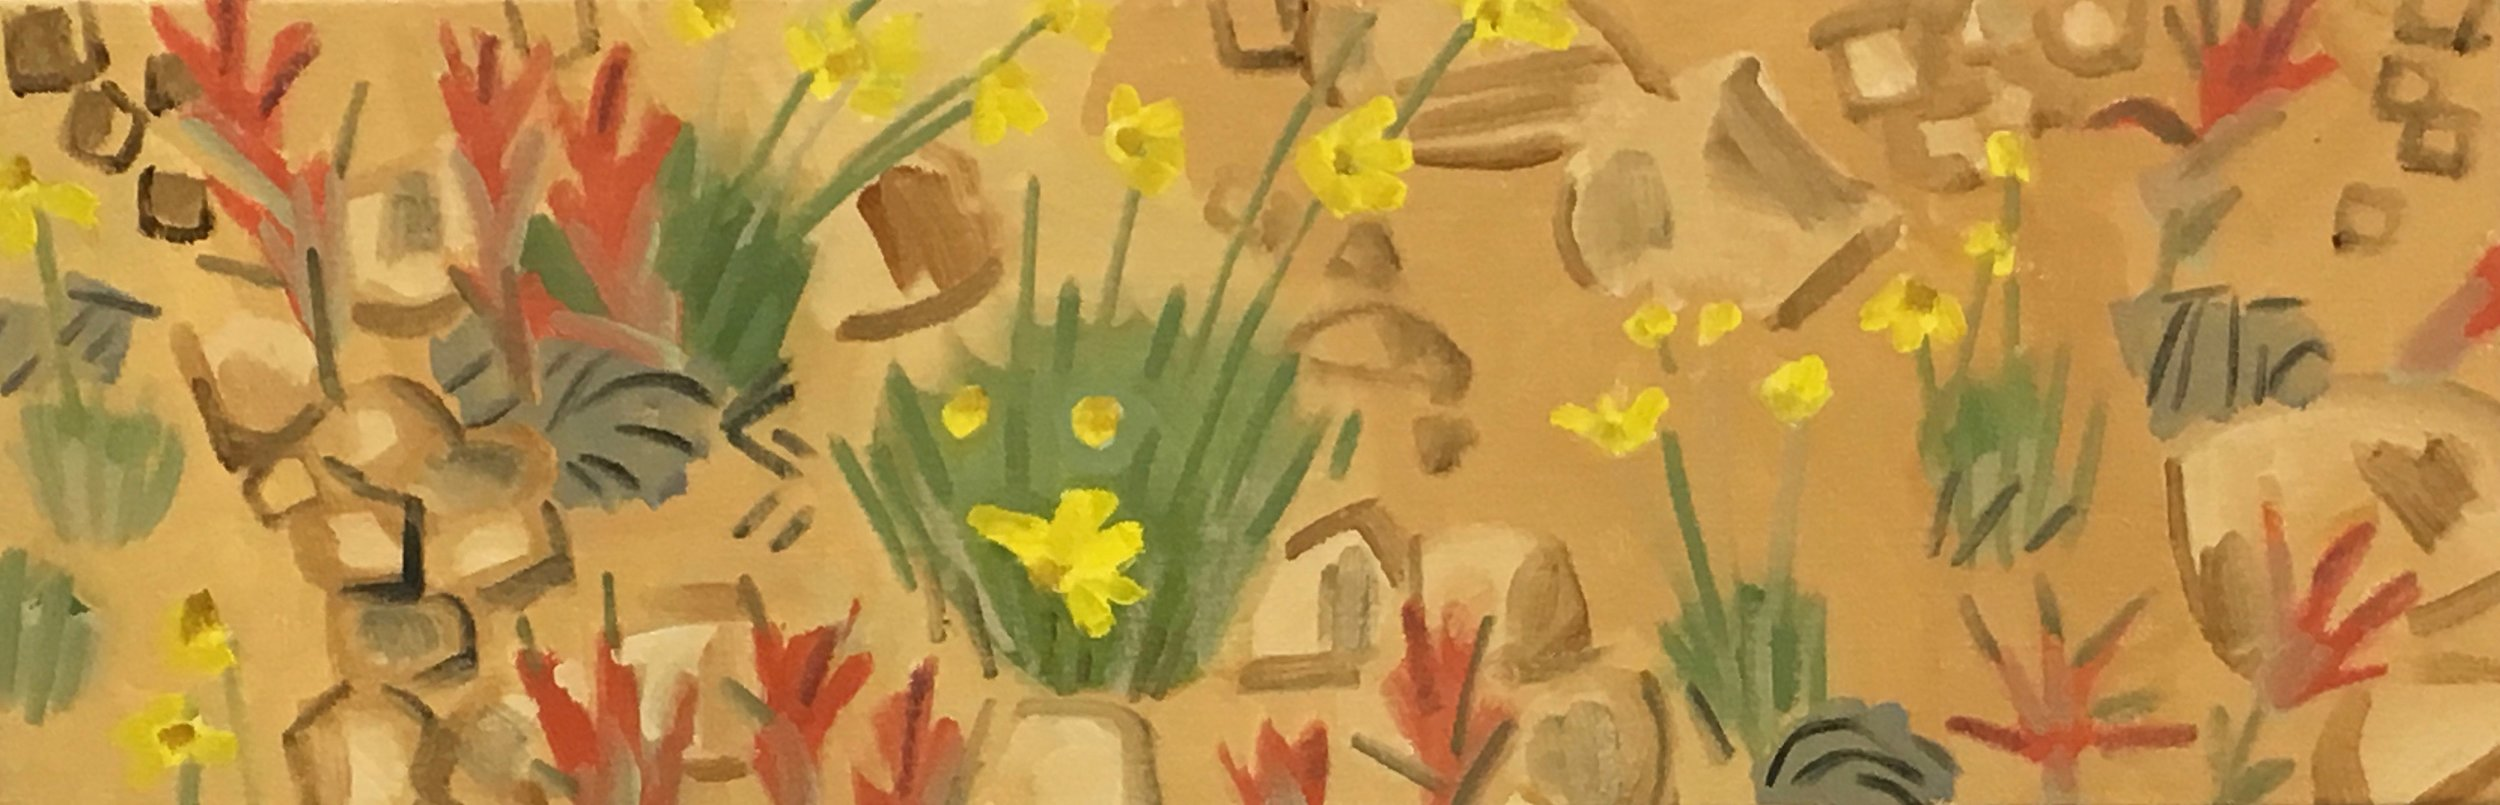 """Indian Paint Brush and Coreopsis, 10 x 30"""", oil on canvas, 2017"""